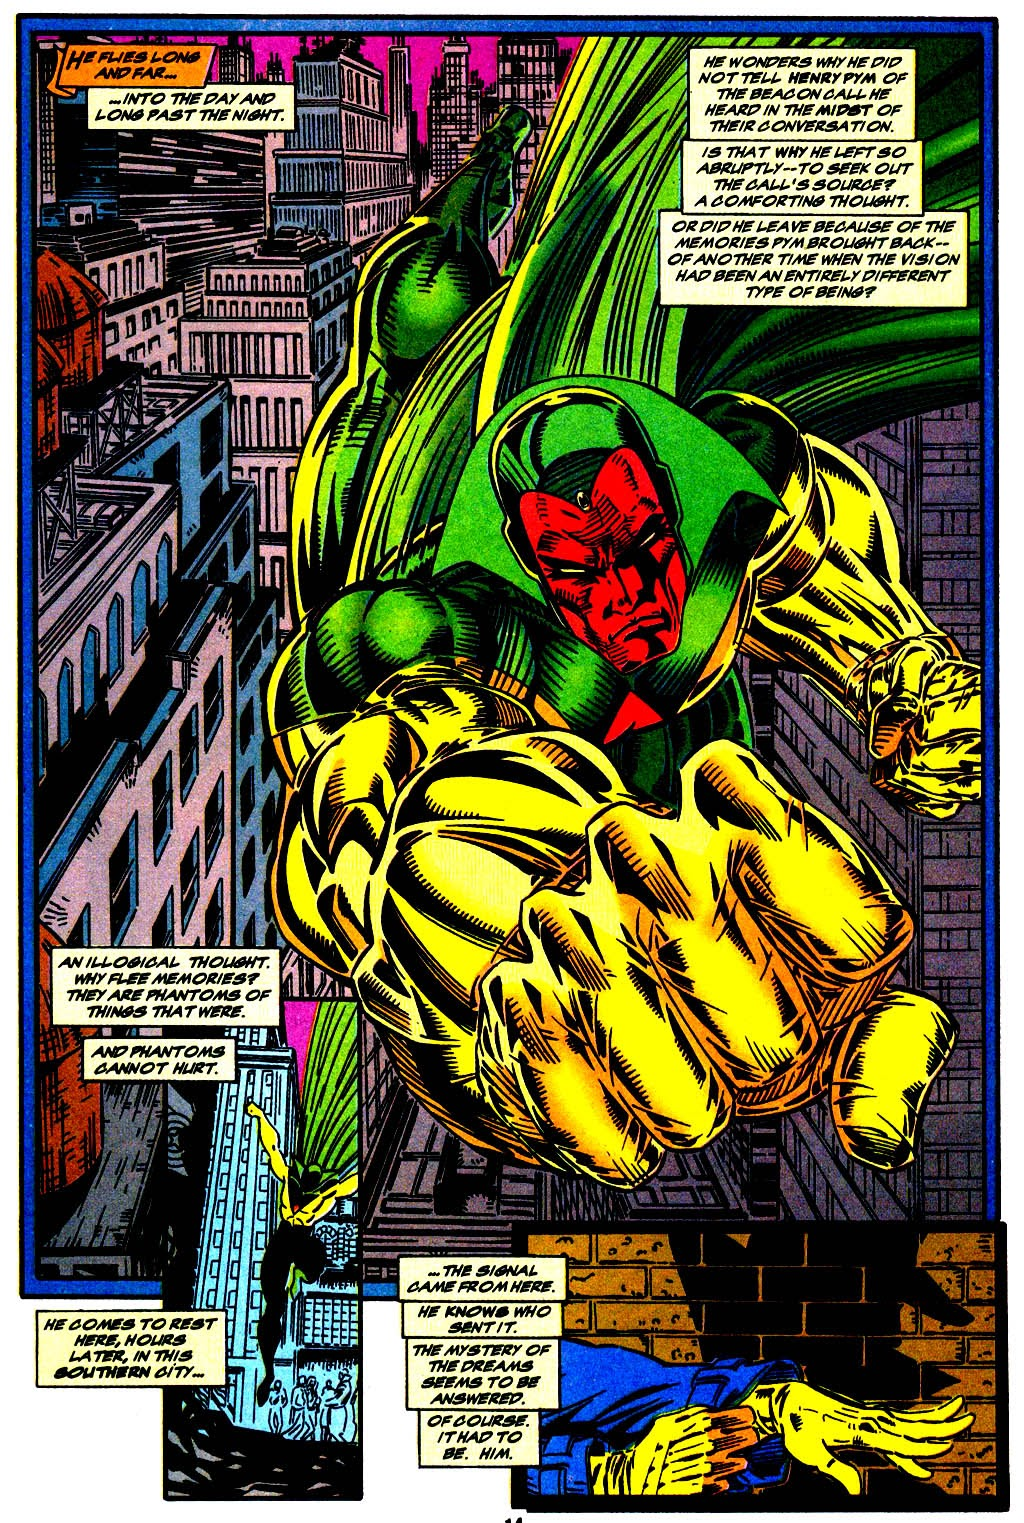 Read online The Vision comic -  Issue #1 - 11